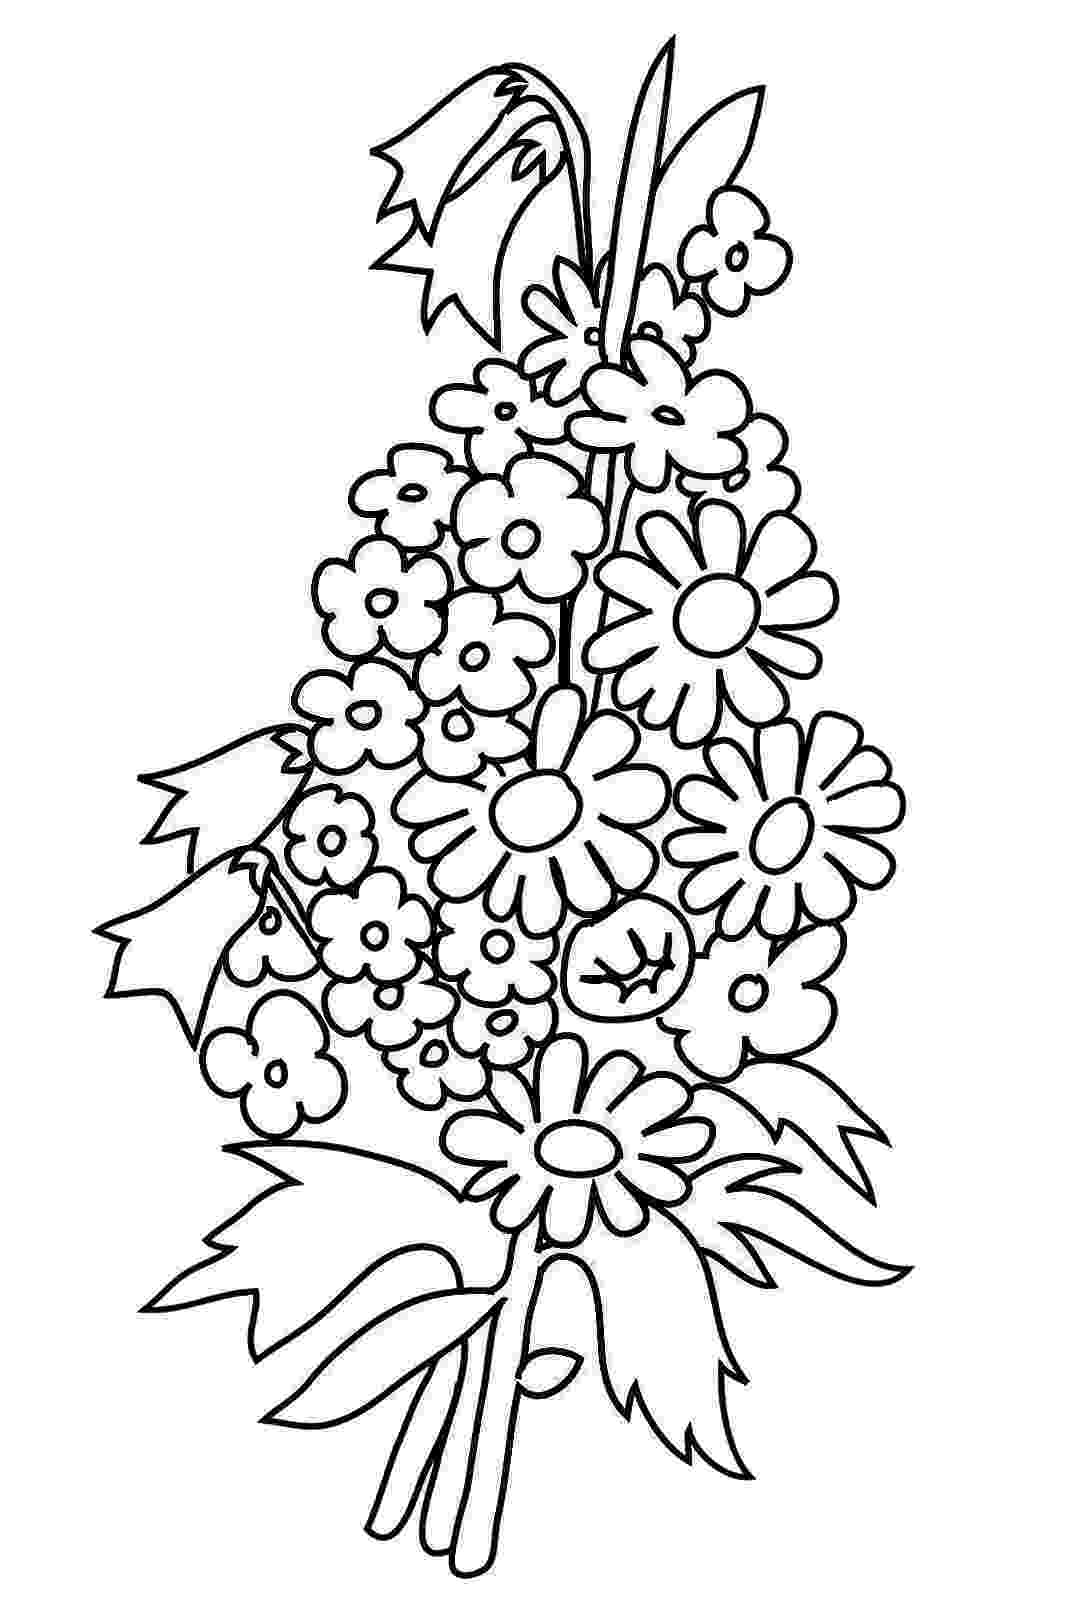 flower coloring book flower coloring pages coloring flower book